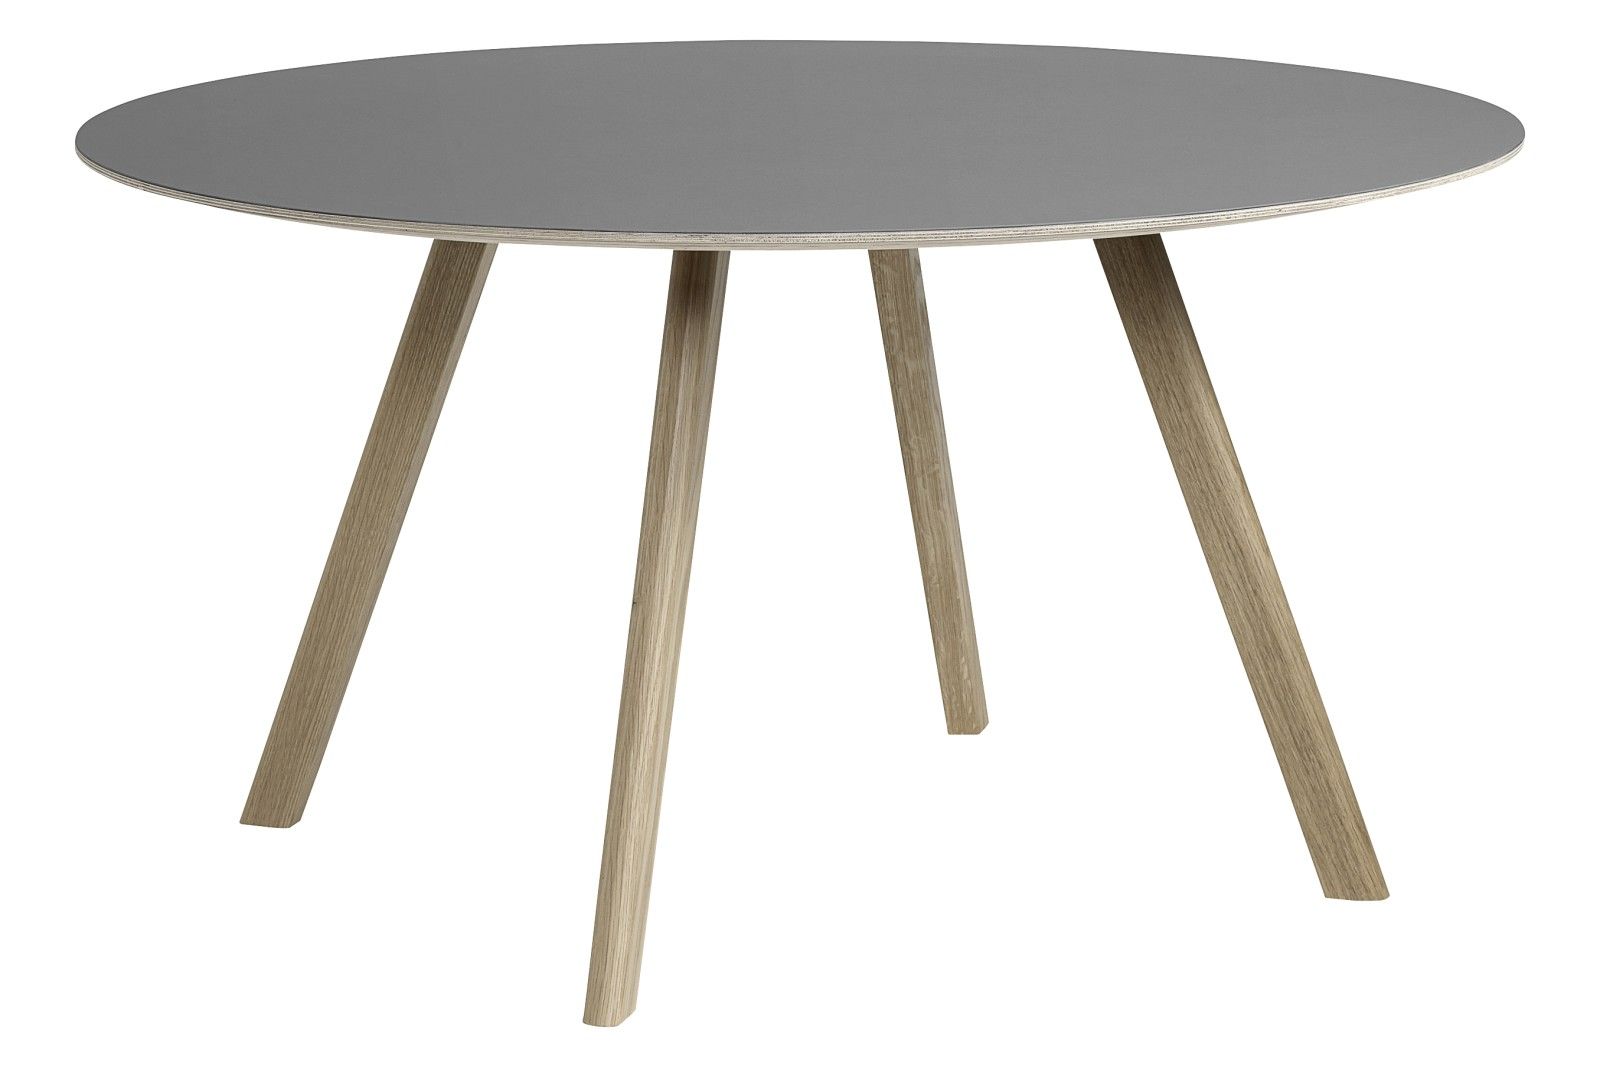 CPH 25 Round Dining Table Linoleum Grey / Wood Soaped Oak